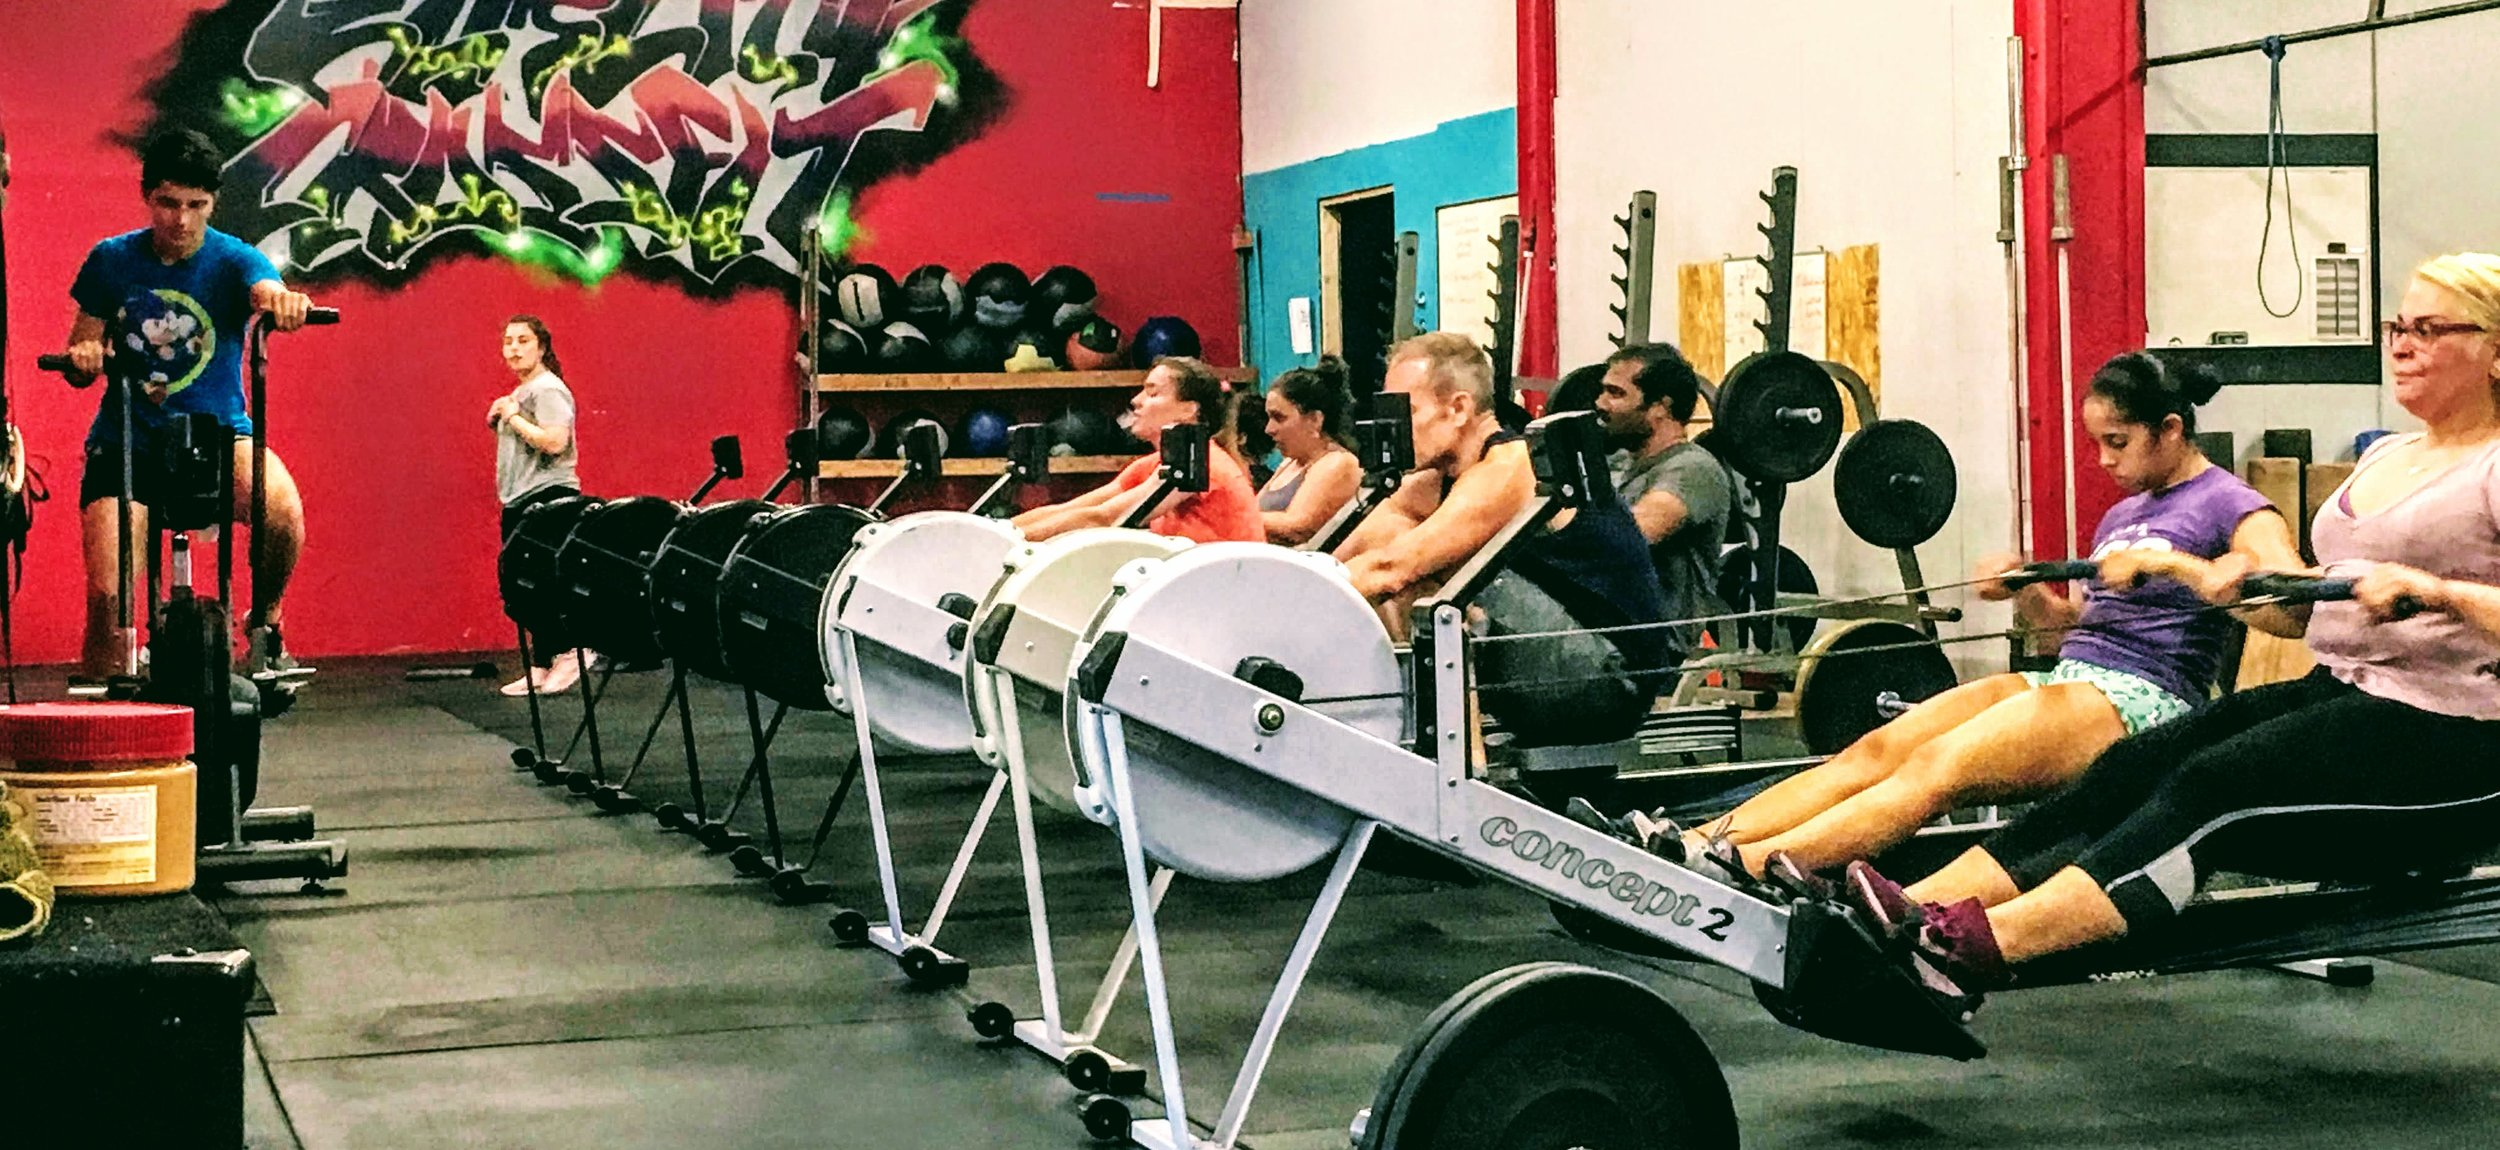 5:30 crew getting after the 1000m row!